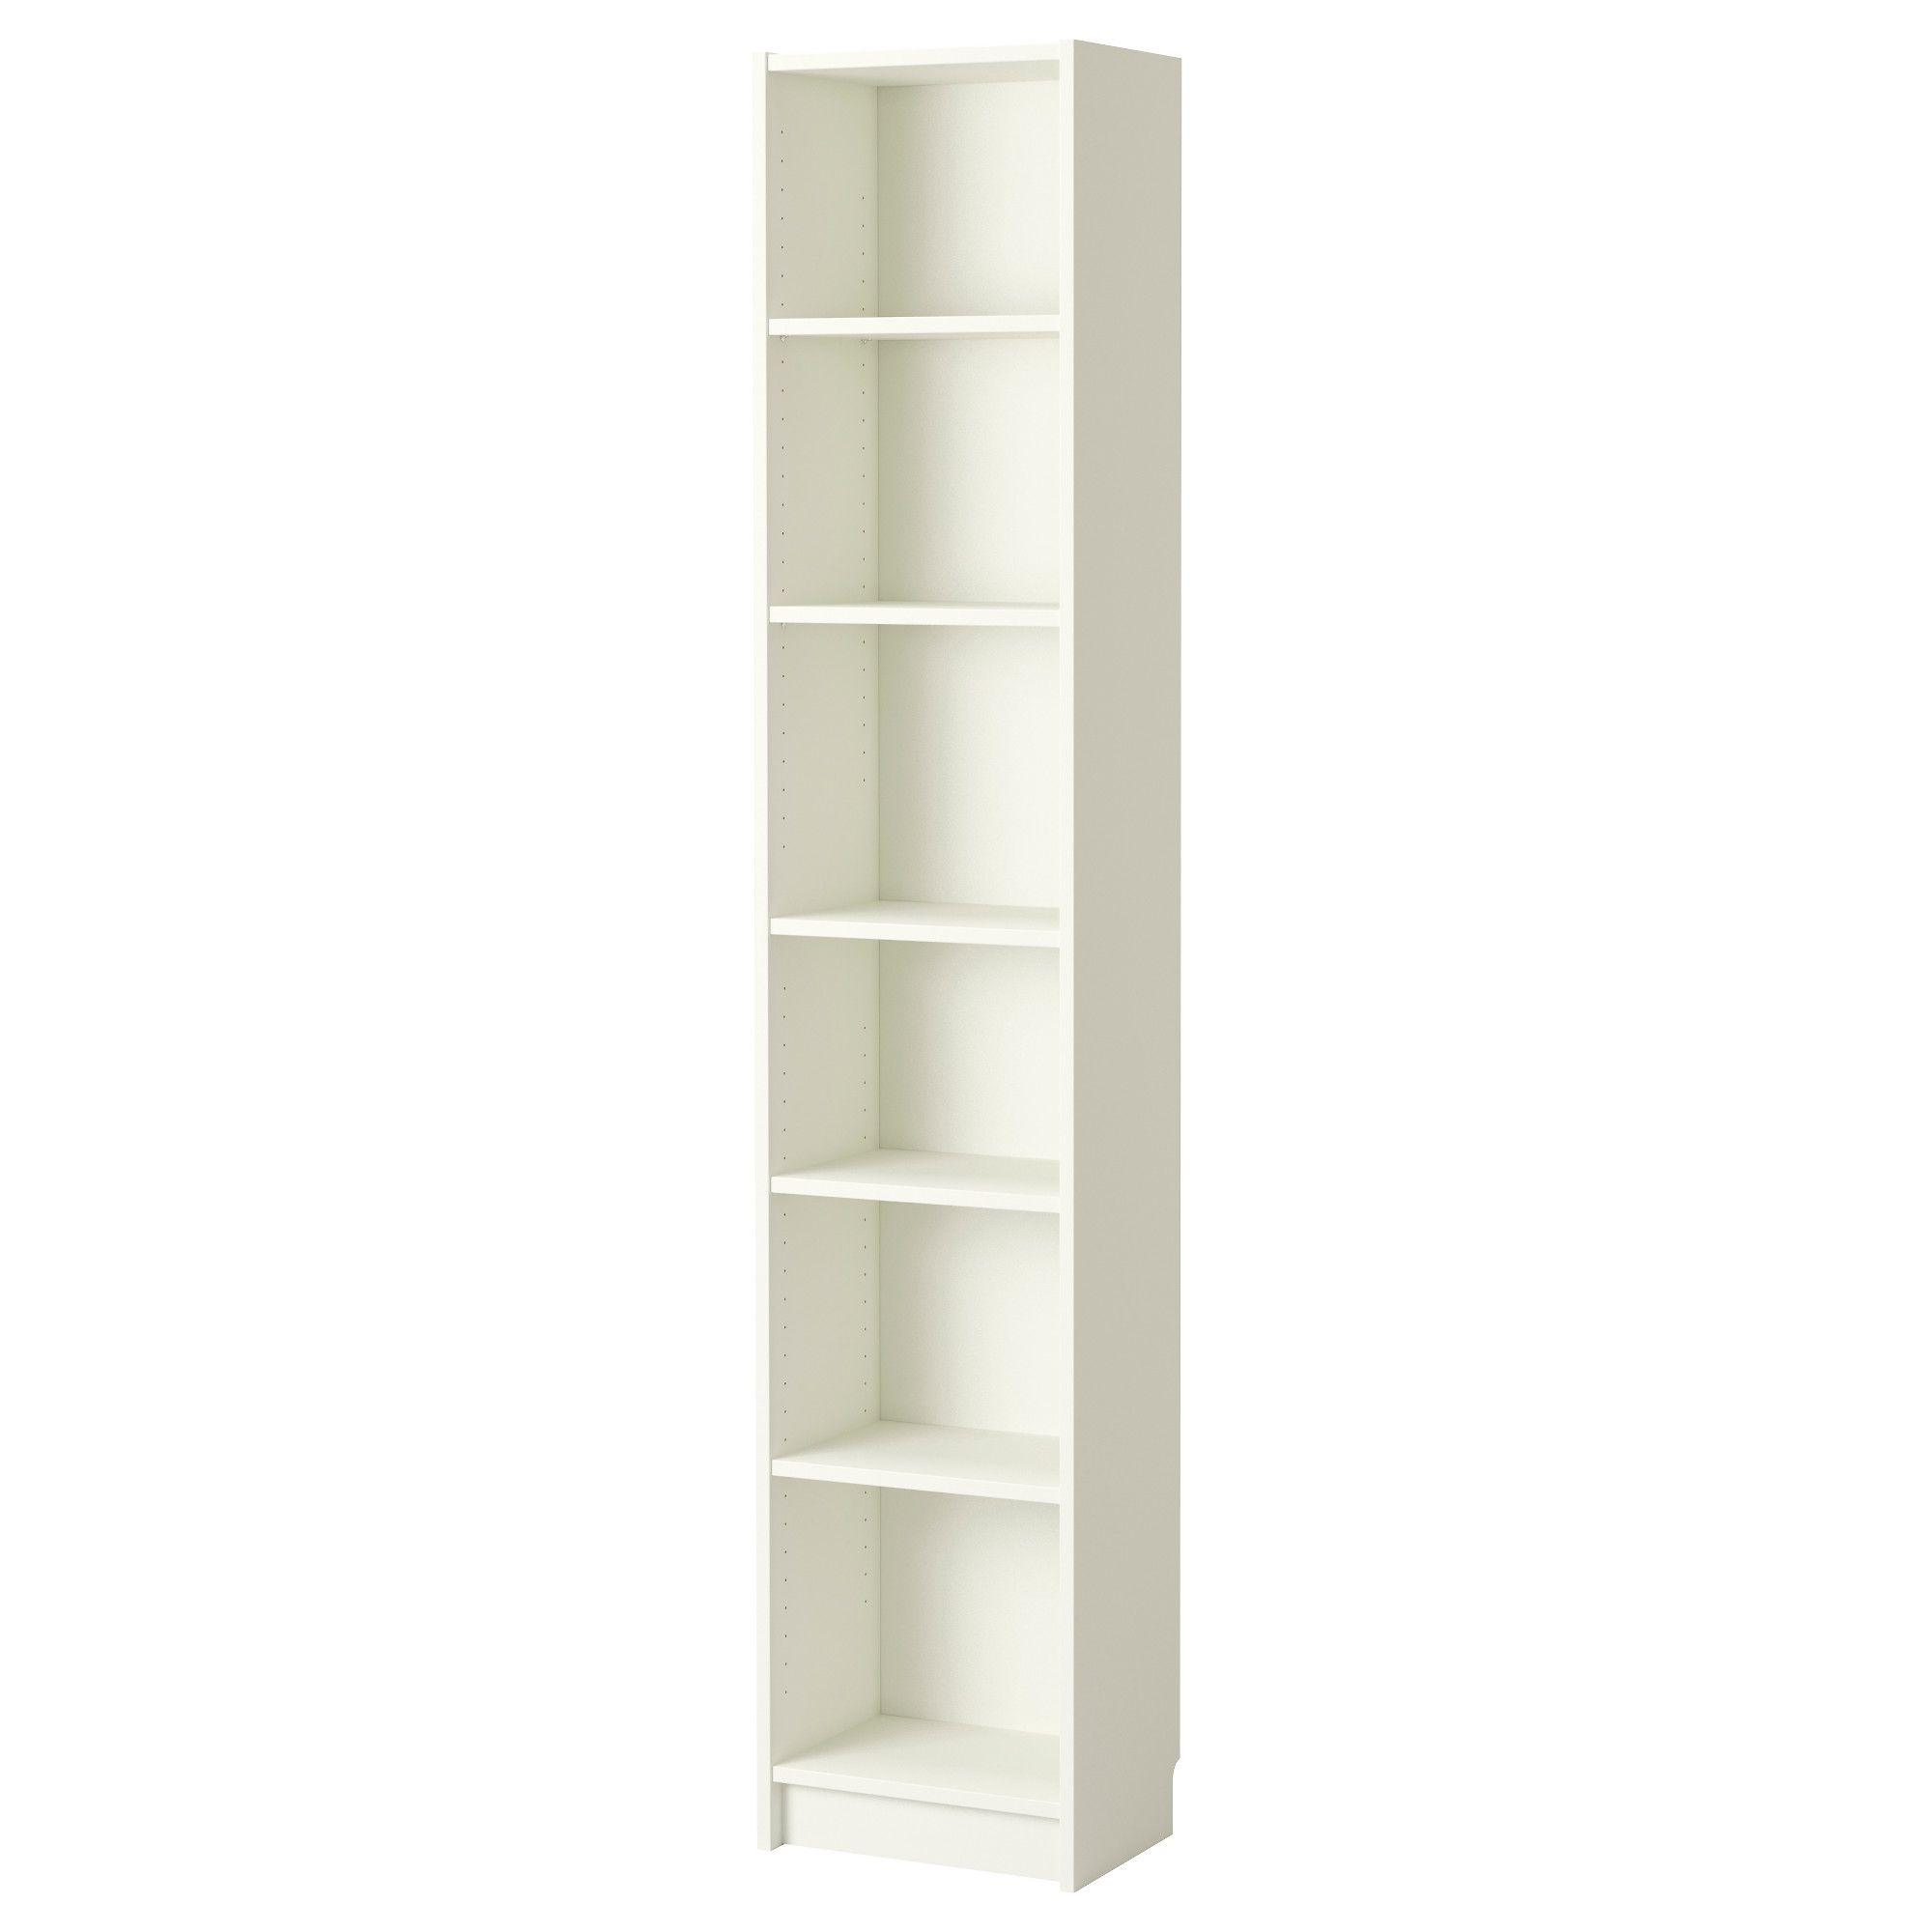 protectors wooden ikea in design home shelf decor lovely bar inspiration chic charming small bedroom corner furniture bookcase box white shelves unit skinny